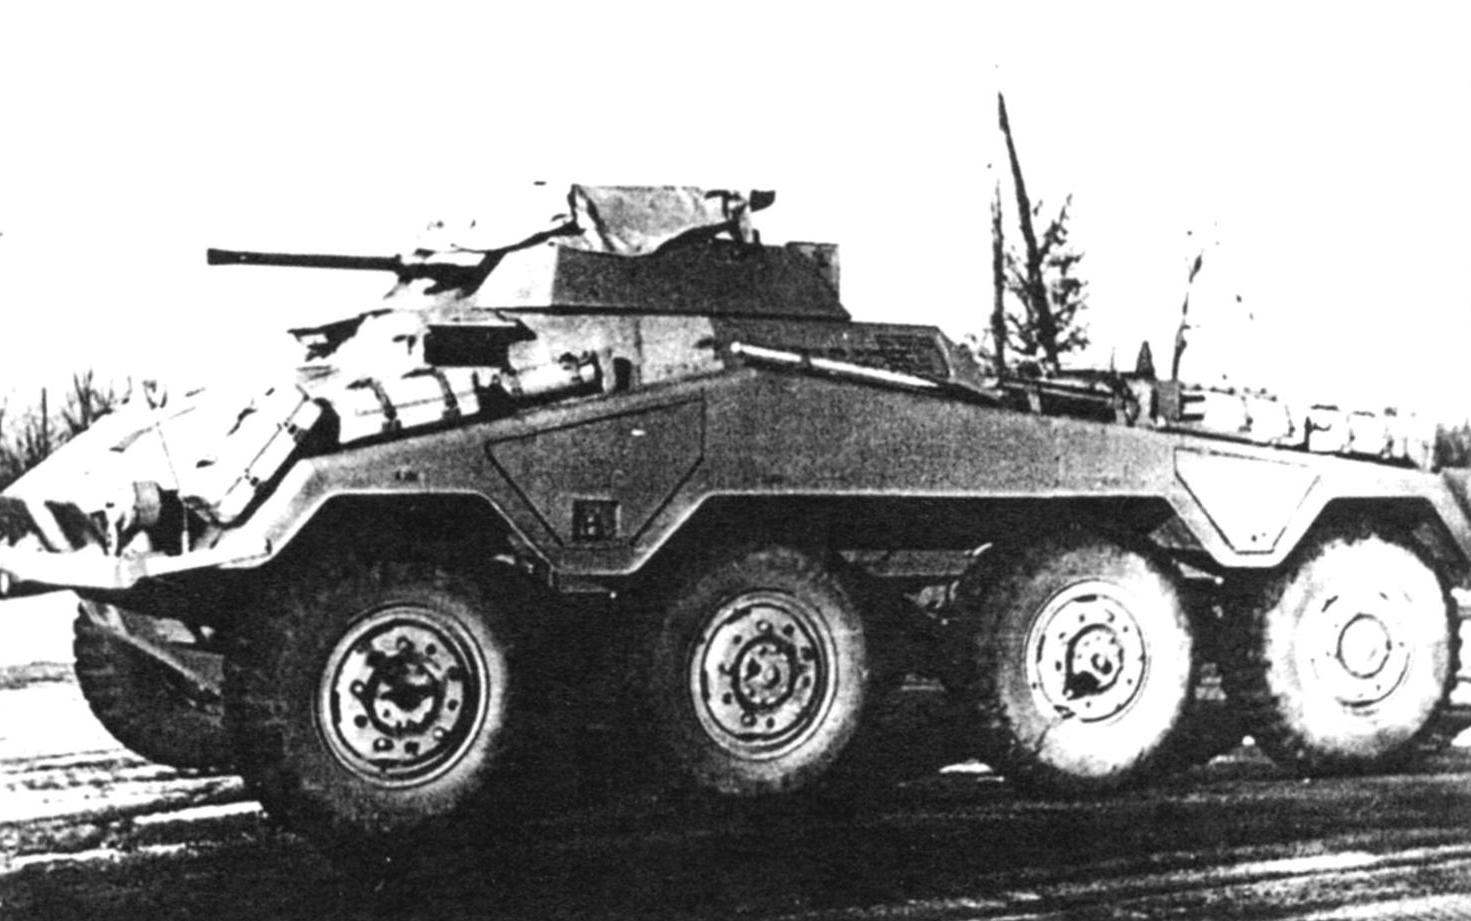 Armored Car Sd.Kfz.234/1 with a 20mm automatic cannon and a 7.62 mm coaxial machine gun